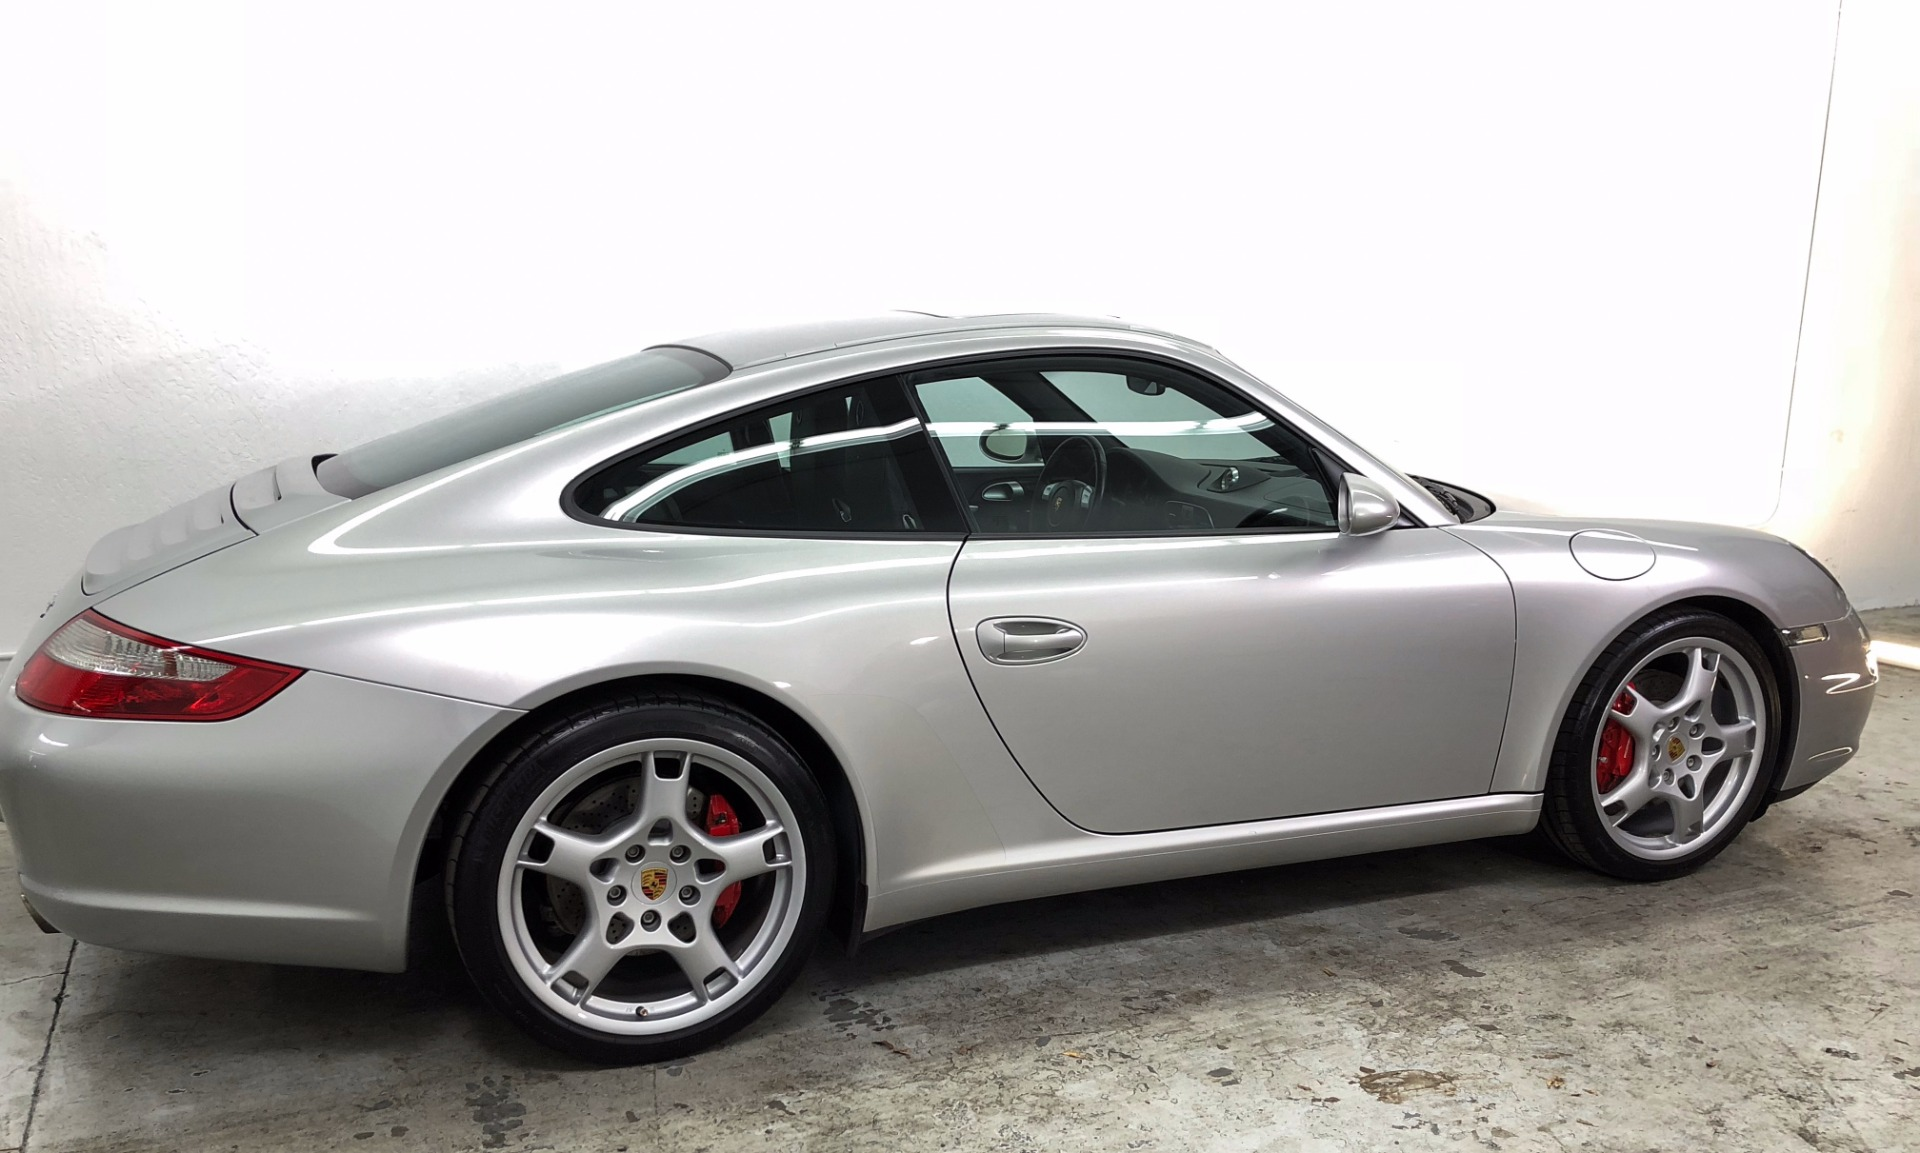 2005 porsche 911 carrera s stock 56 for sale near. Black Bedroom Furniture Sets. Home Design Ideas